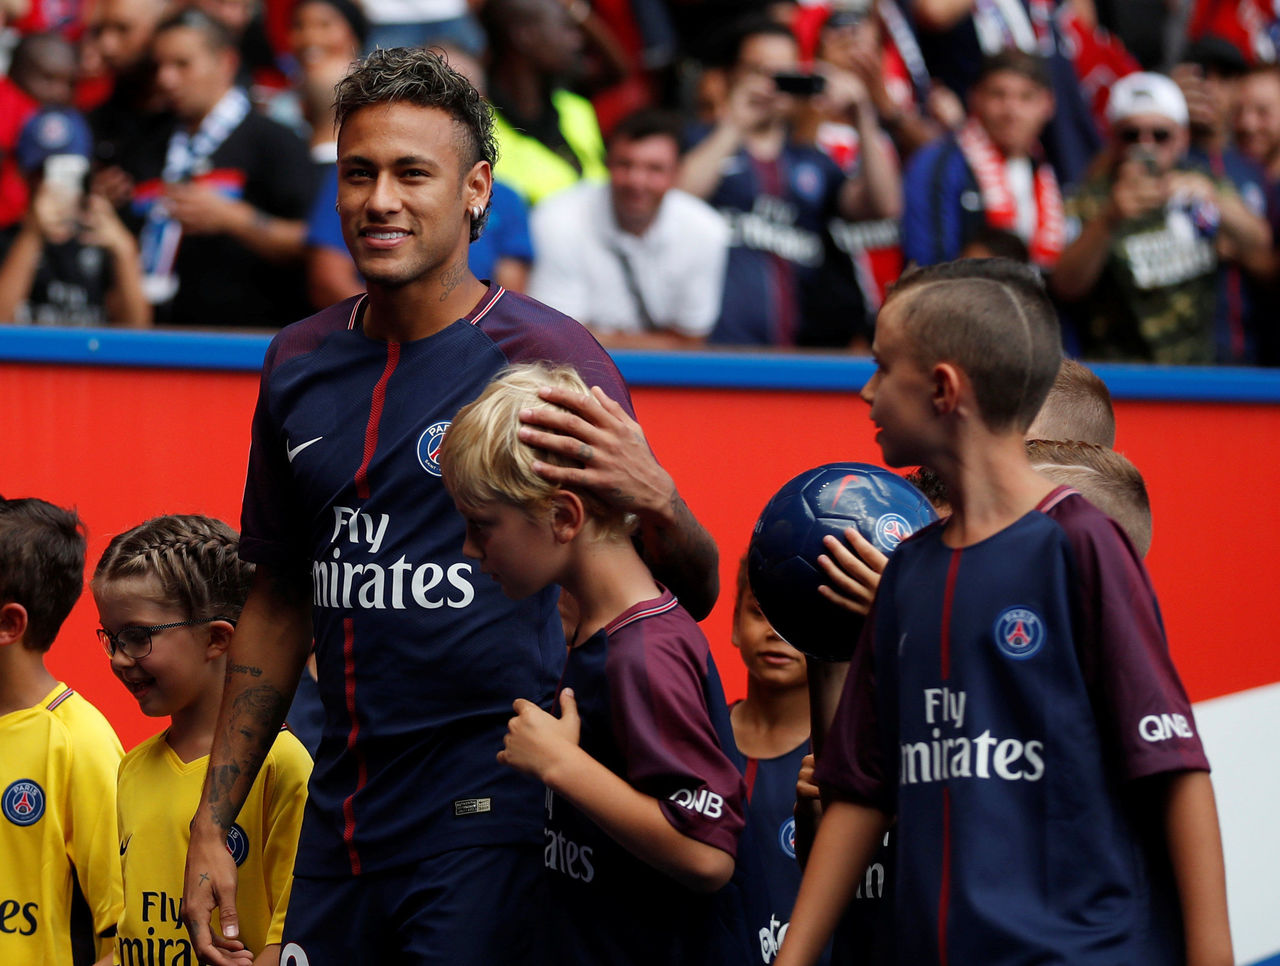 Cropped 2017 08 05t142844z 808700310 rc171e4629a0 rtrmadp 3 soccer france psg ami neymar